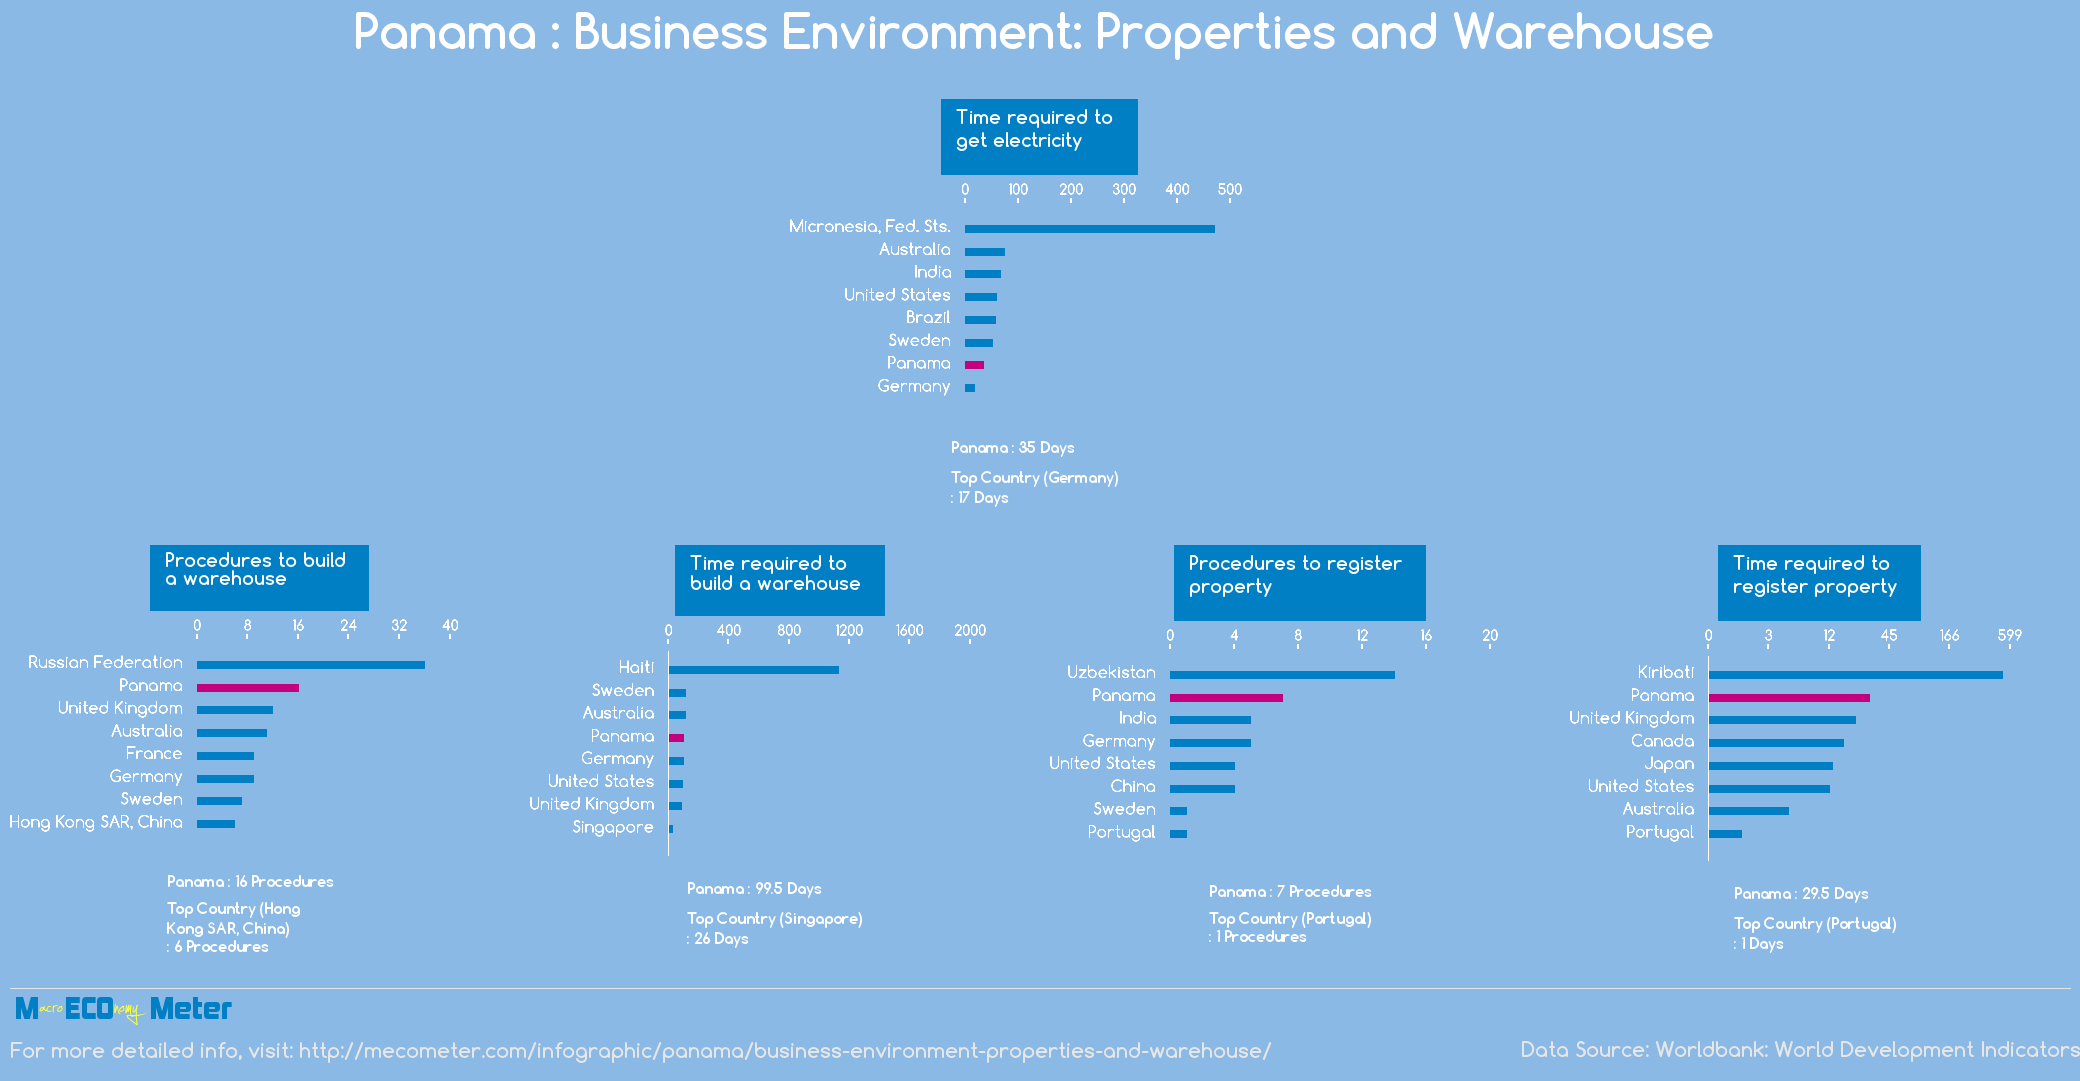 Panama : Business Environment: Properties and Warehouse